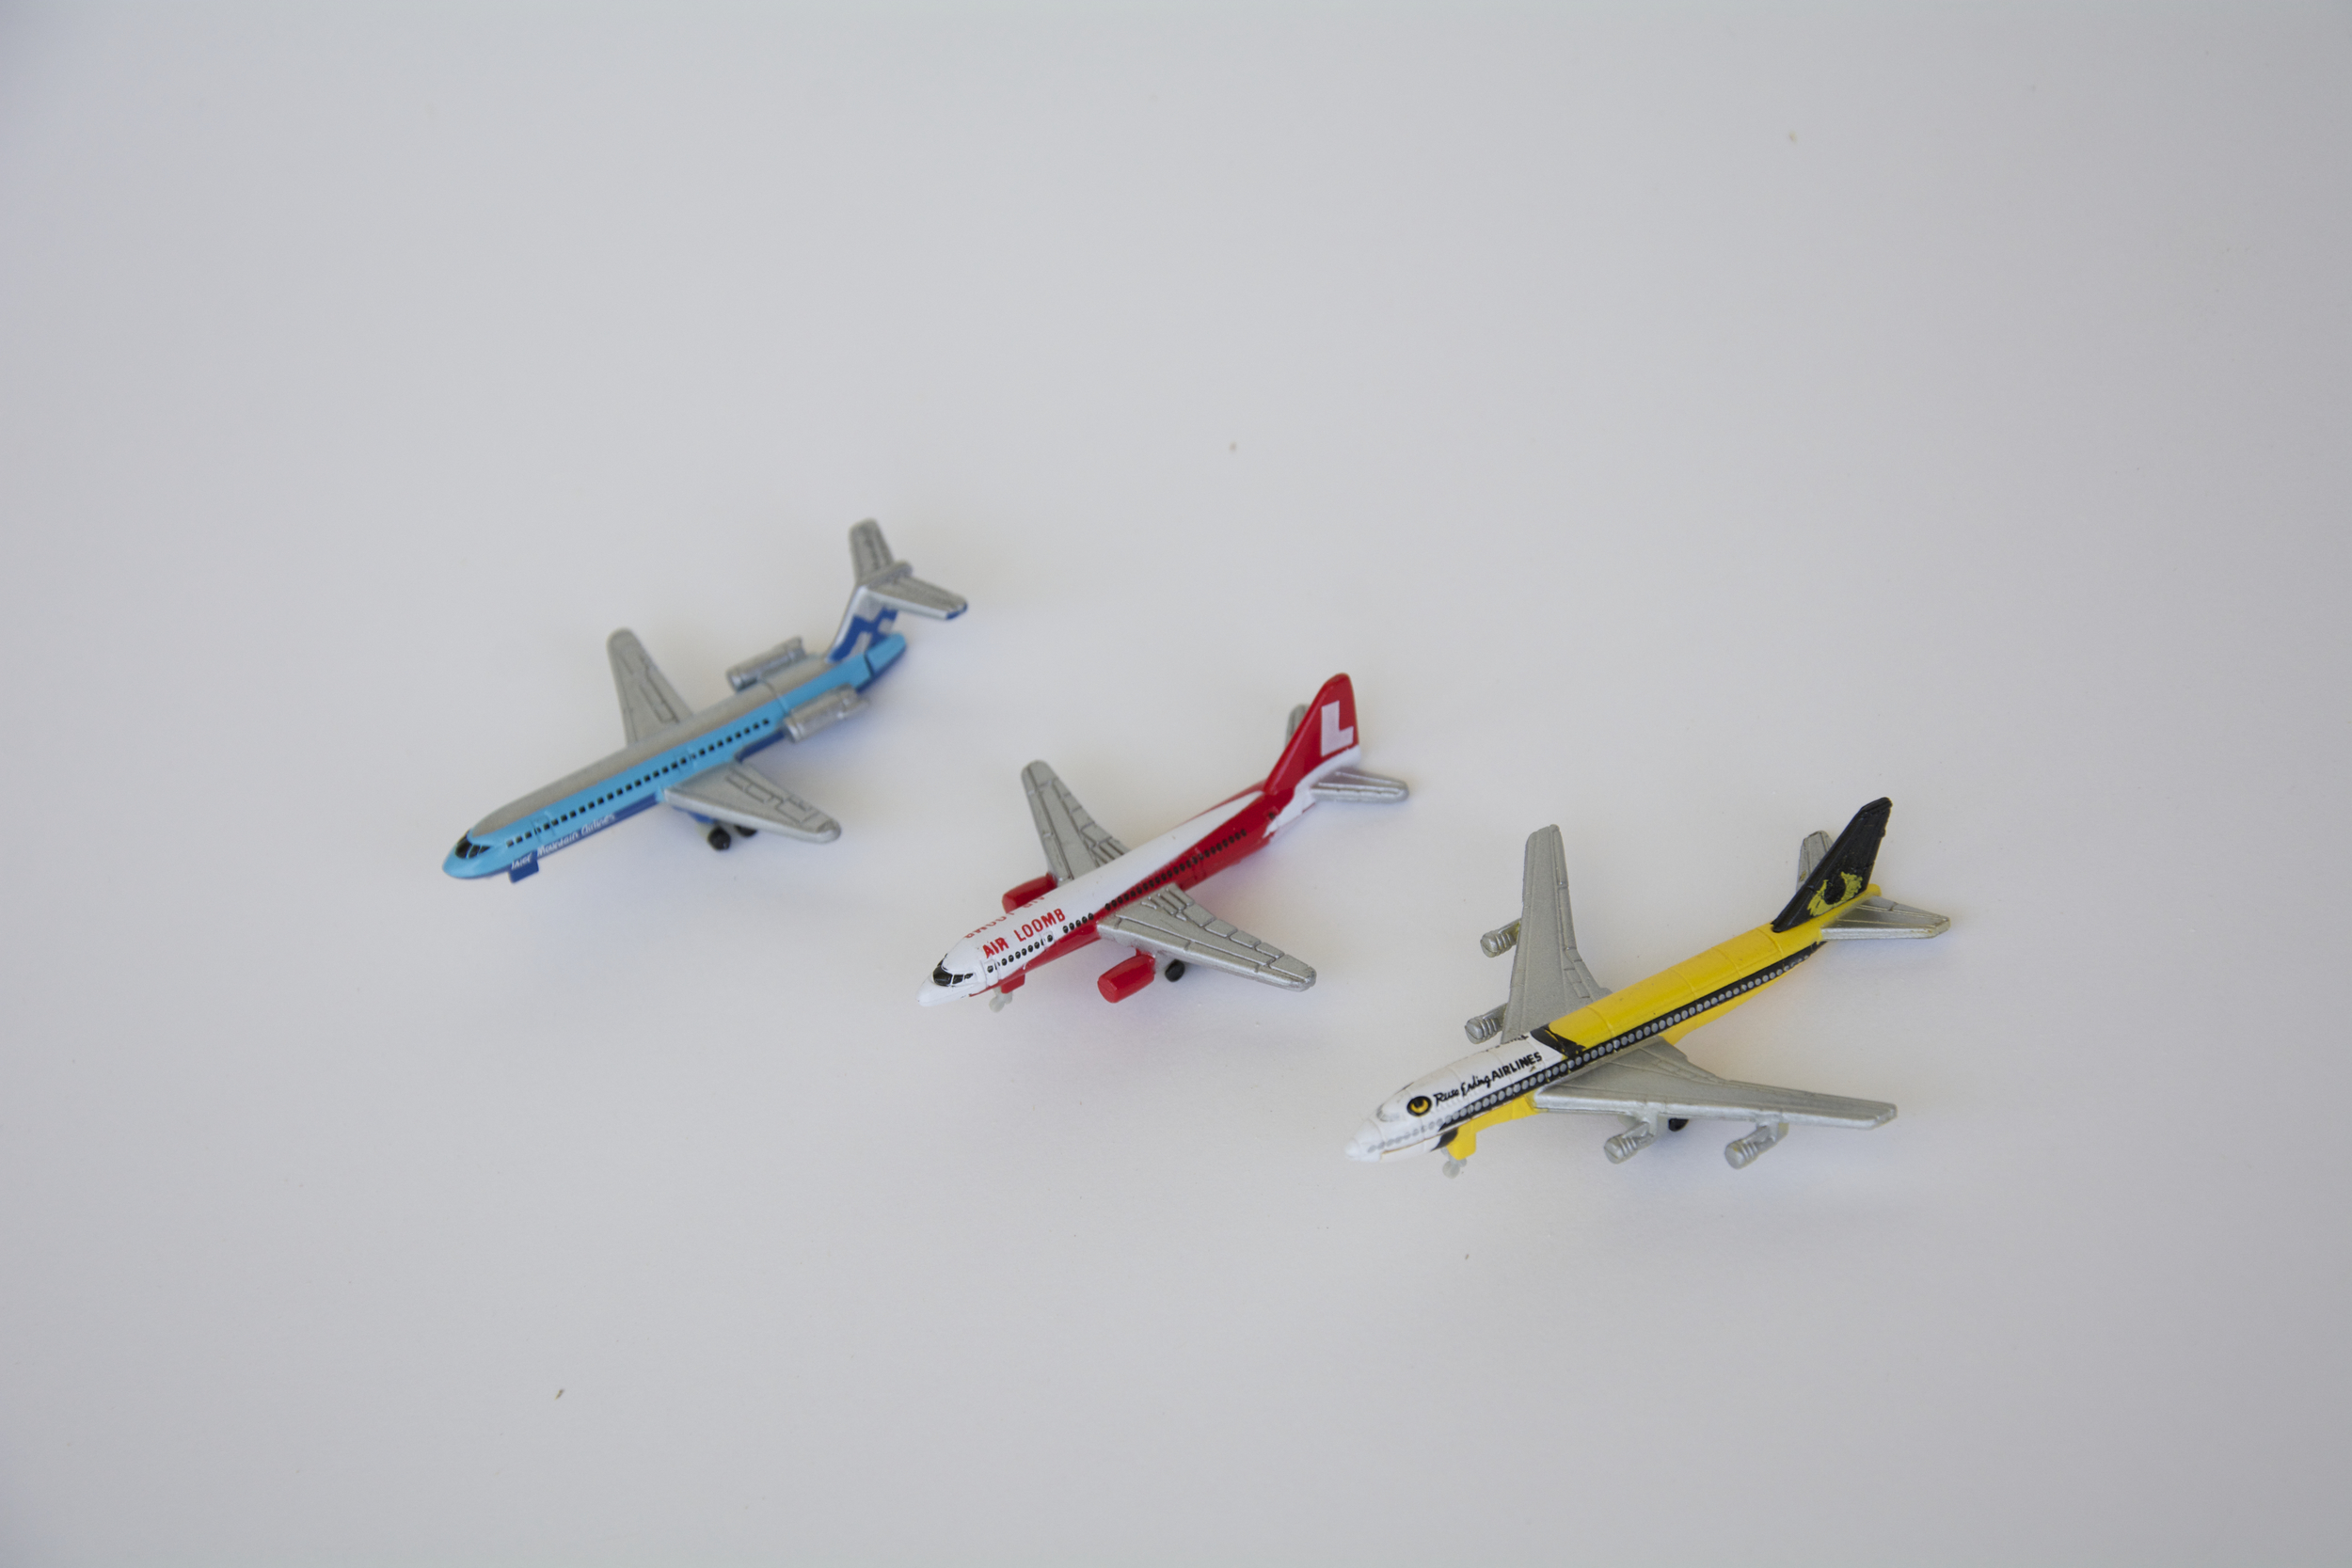 Some of he Micro Machines planes